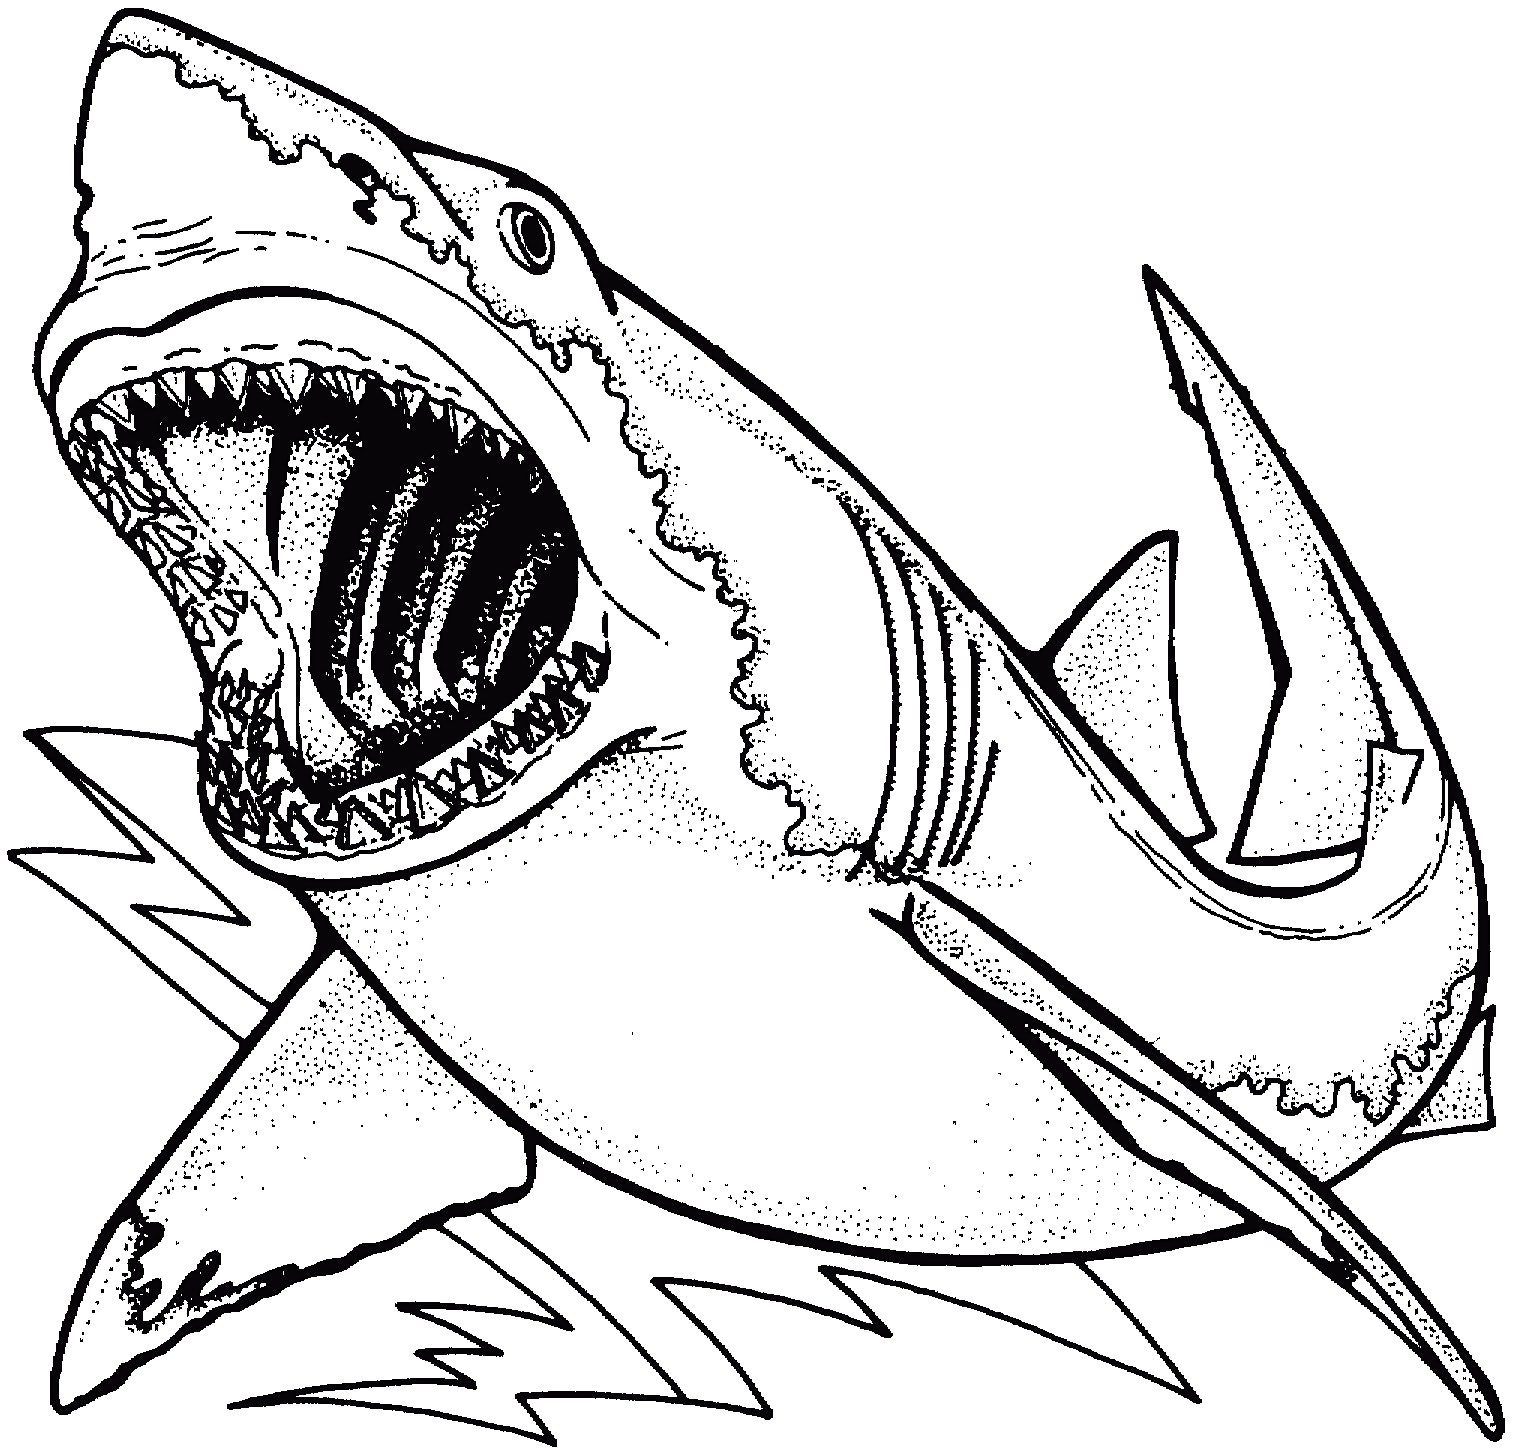 It's just a graphic of Clean shark coloring sheet